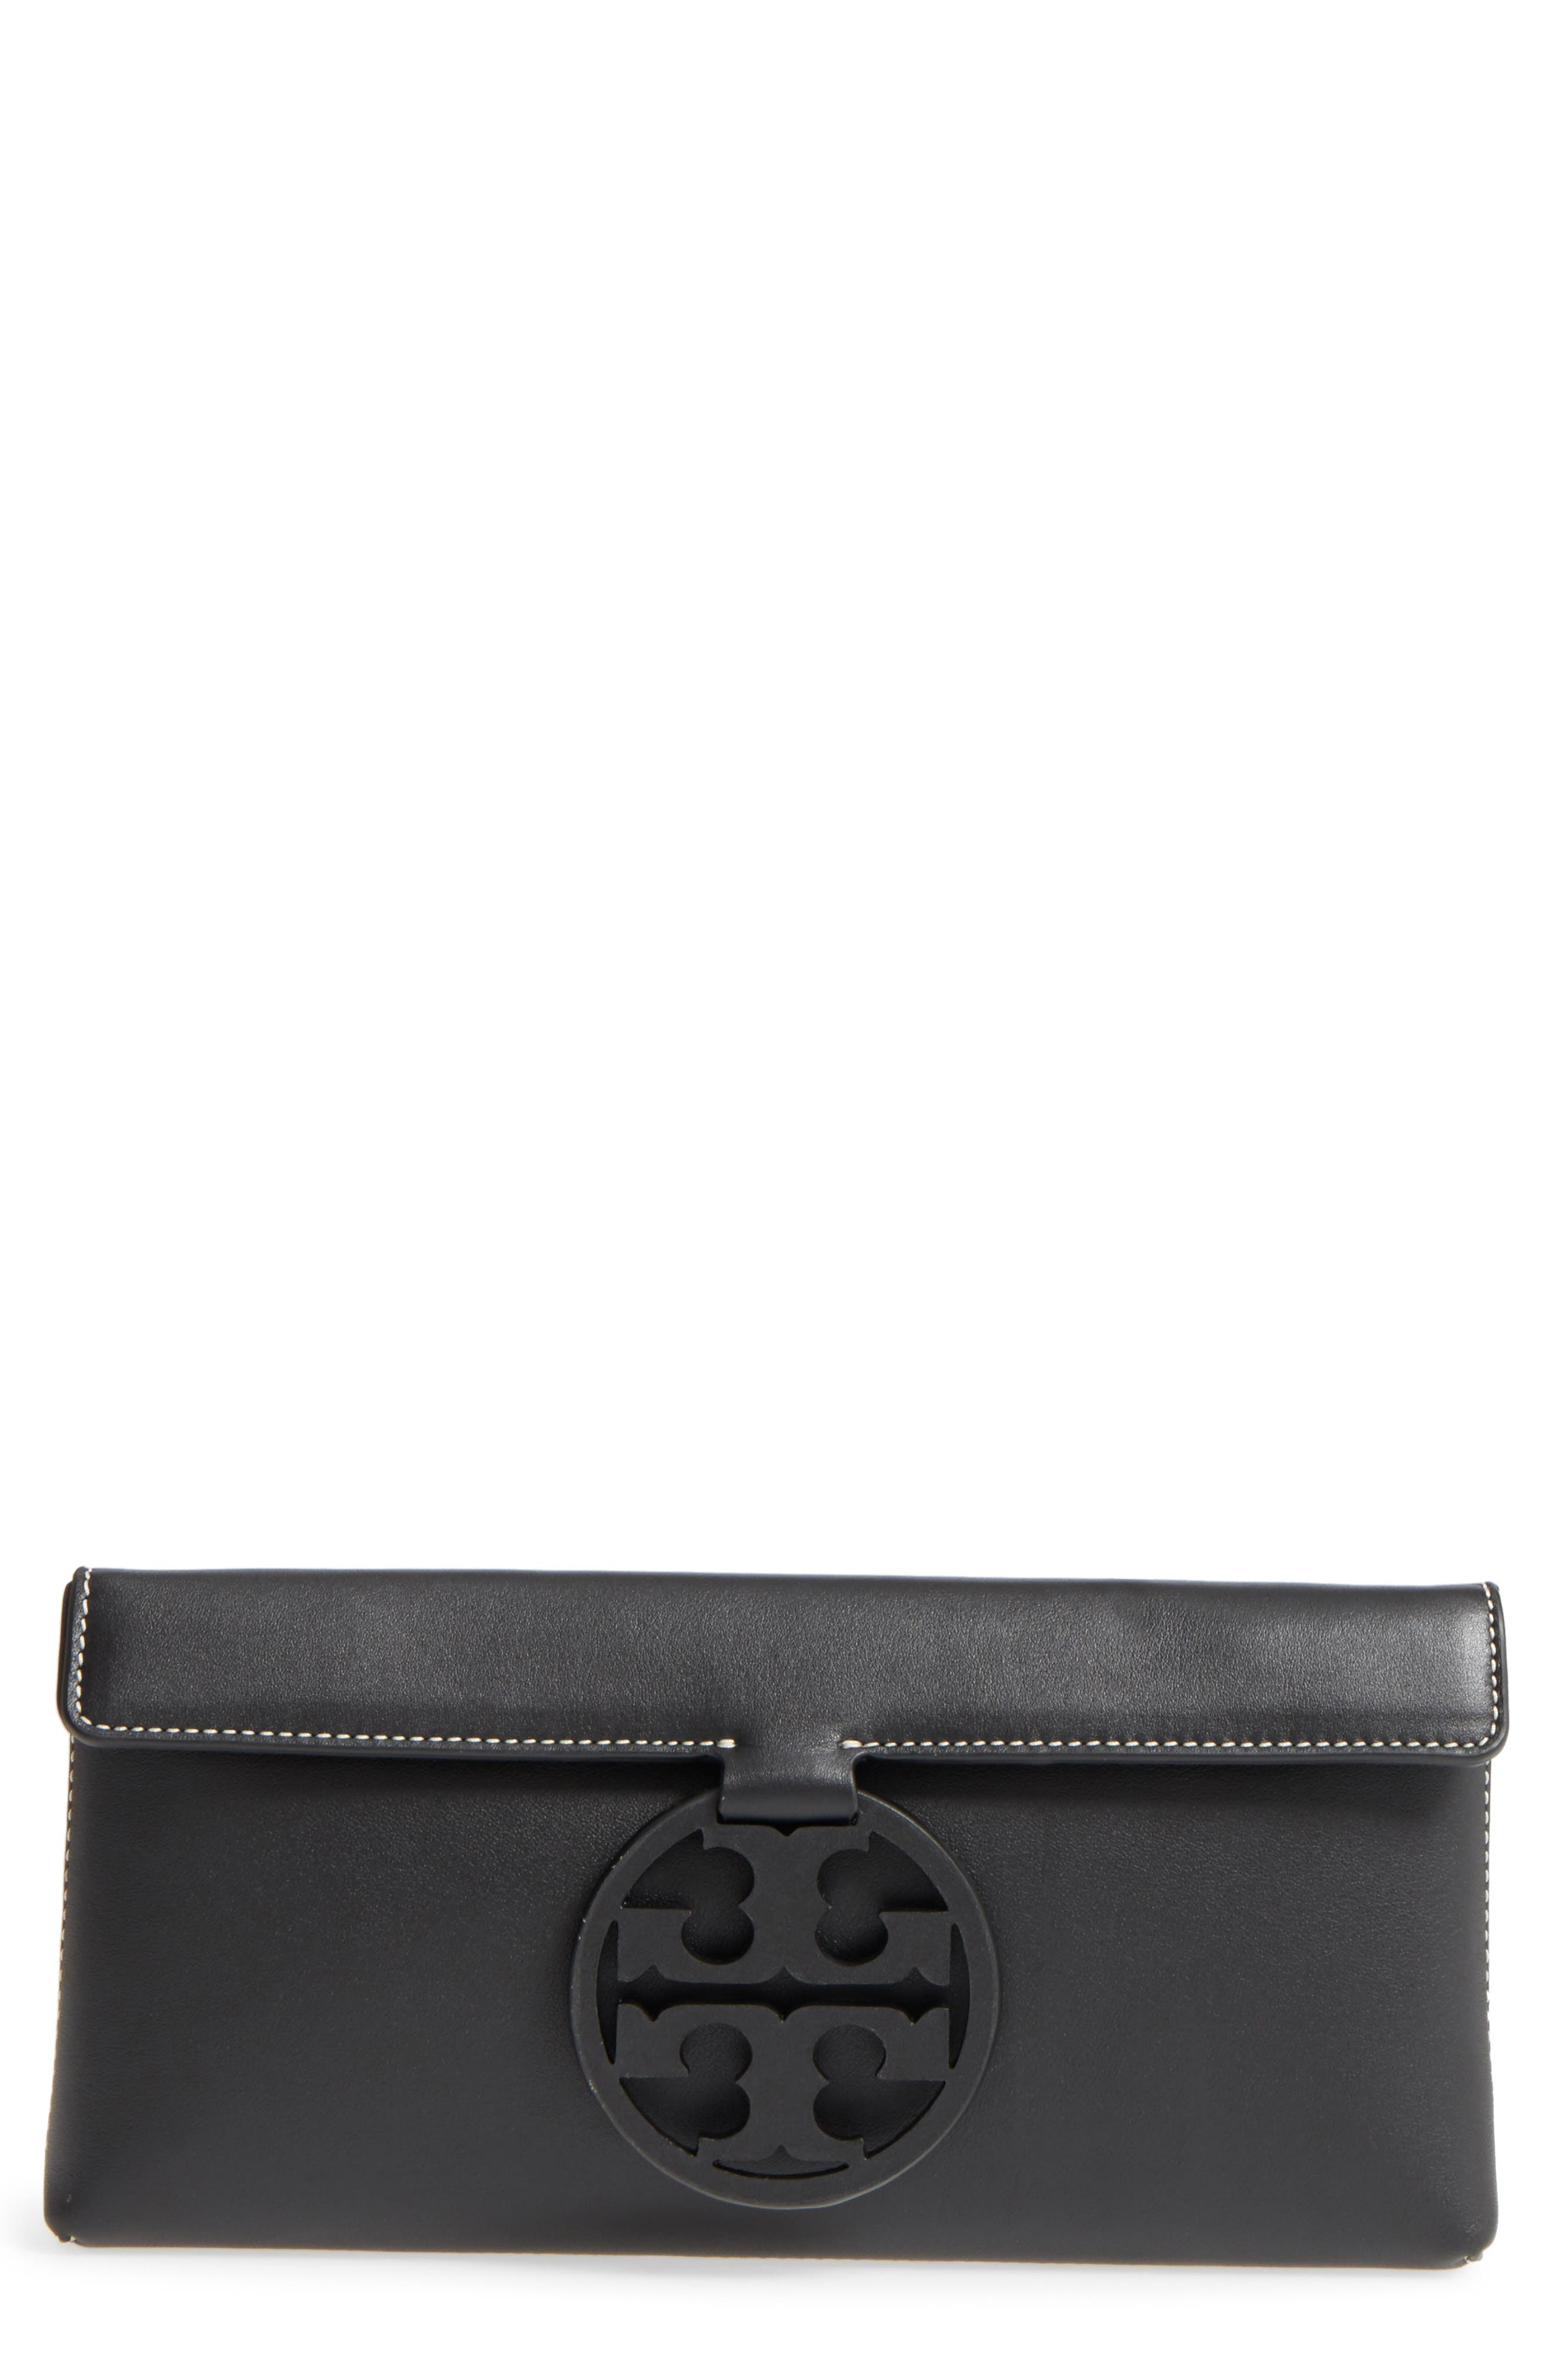 Miller Leather Clutch,                             Main thumbnail 1, color,                             001